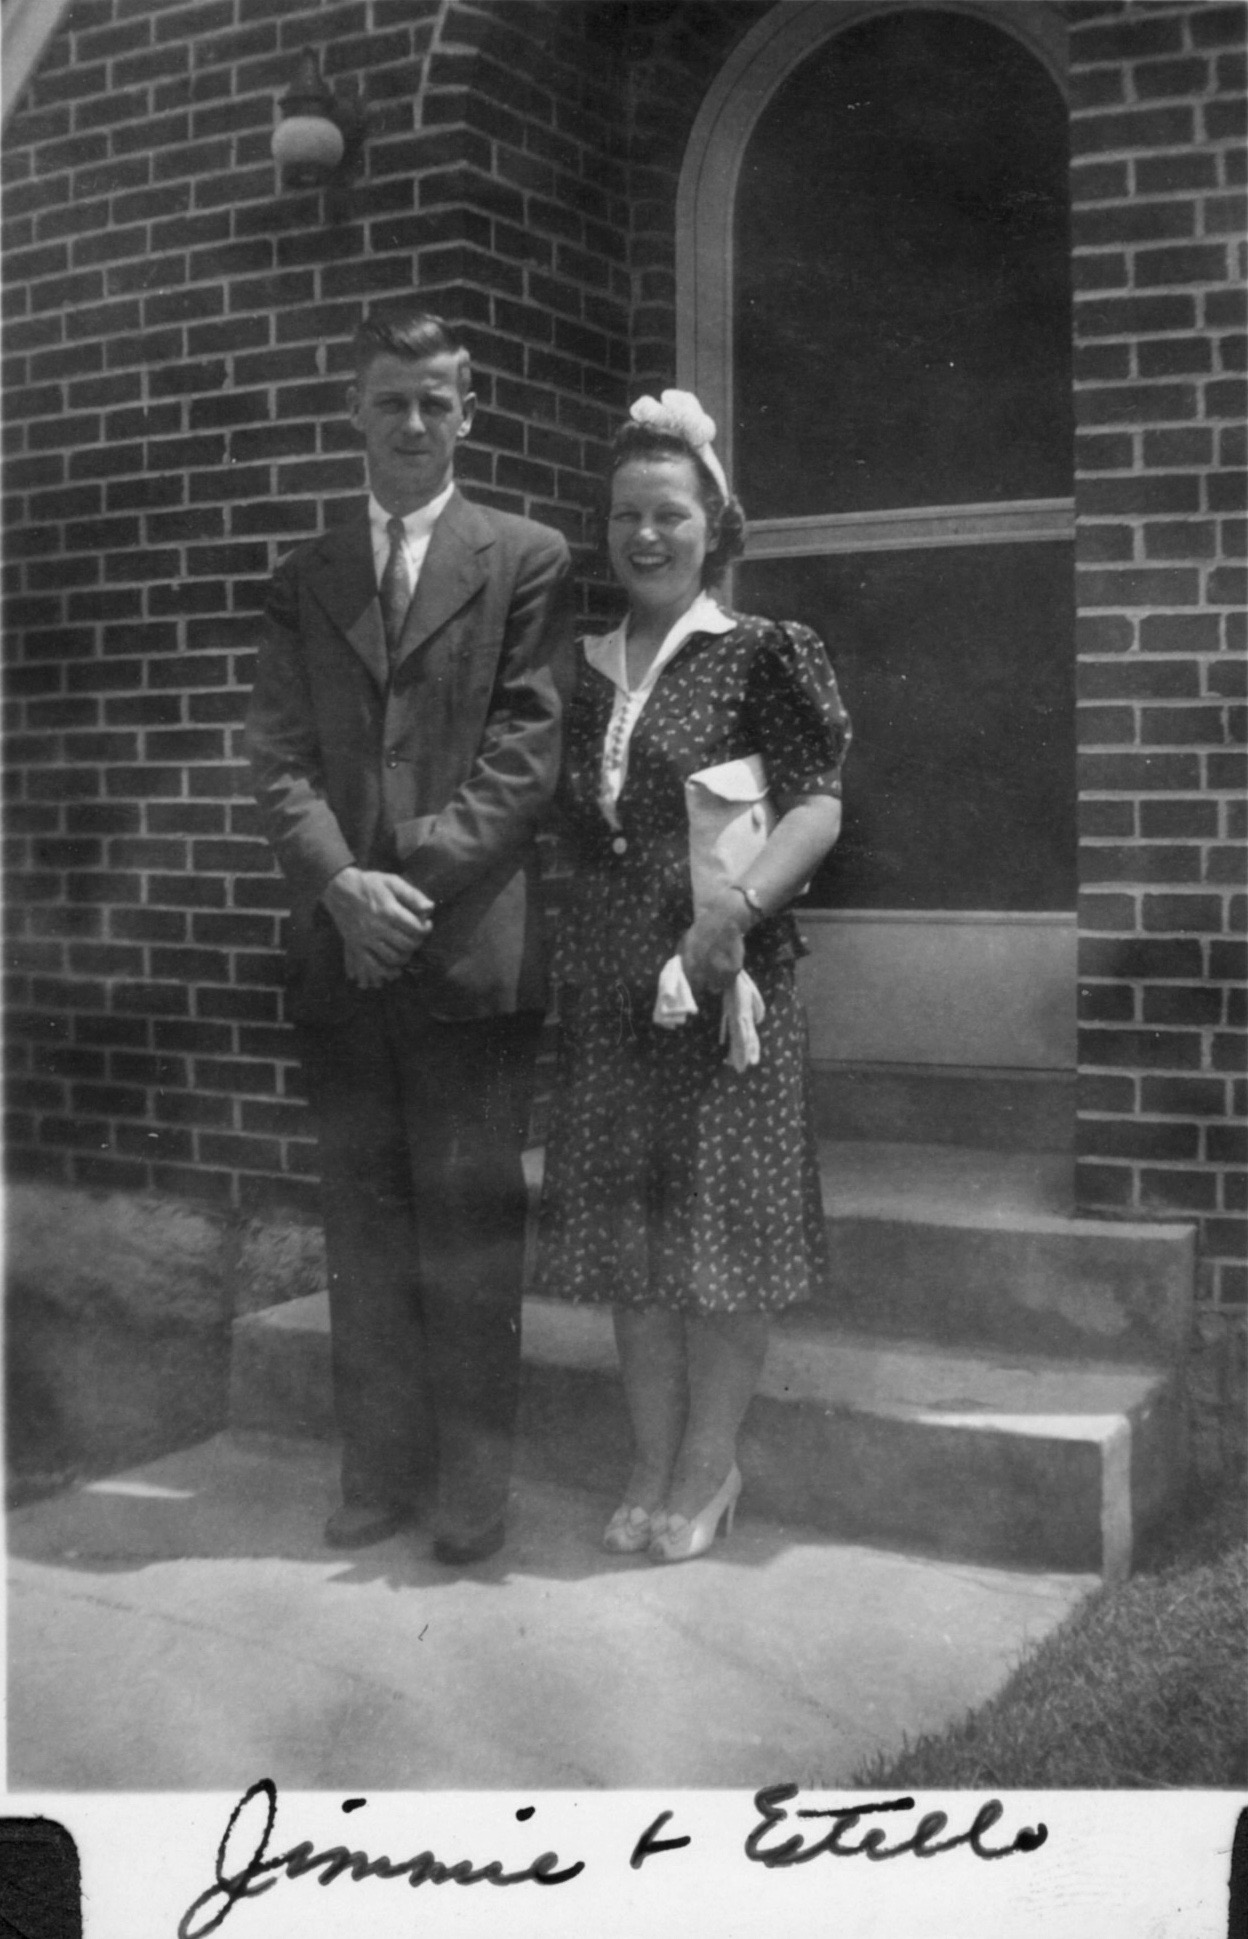 Early 1943, about a year after they bought the house on Castle Heights Avenue. The caption was written by my Aunt Bettye Kate, her sister. This is roughly about the time i was conceived. He would enlist in the Seabees in August.